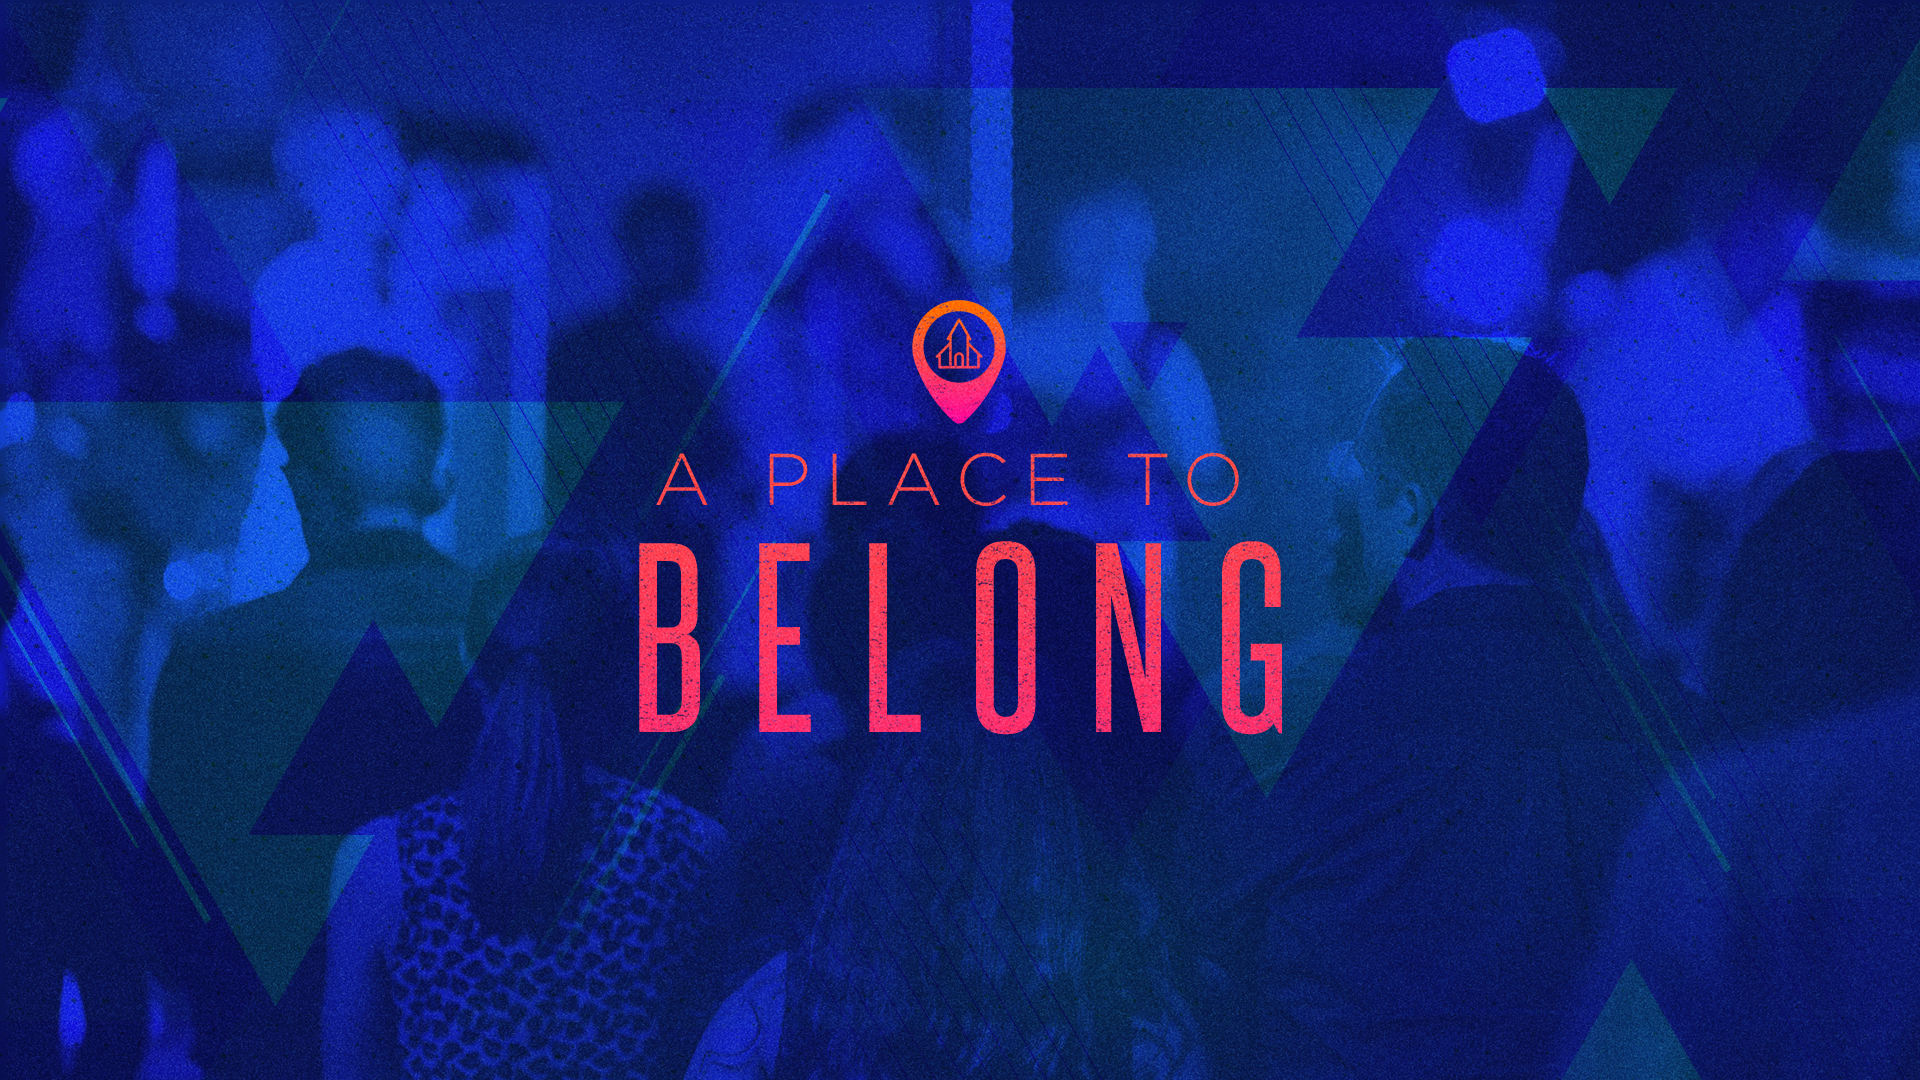 A Place To Belong - Title image